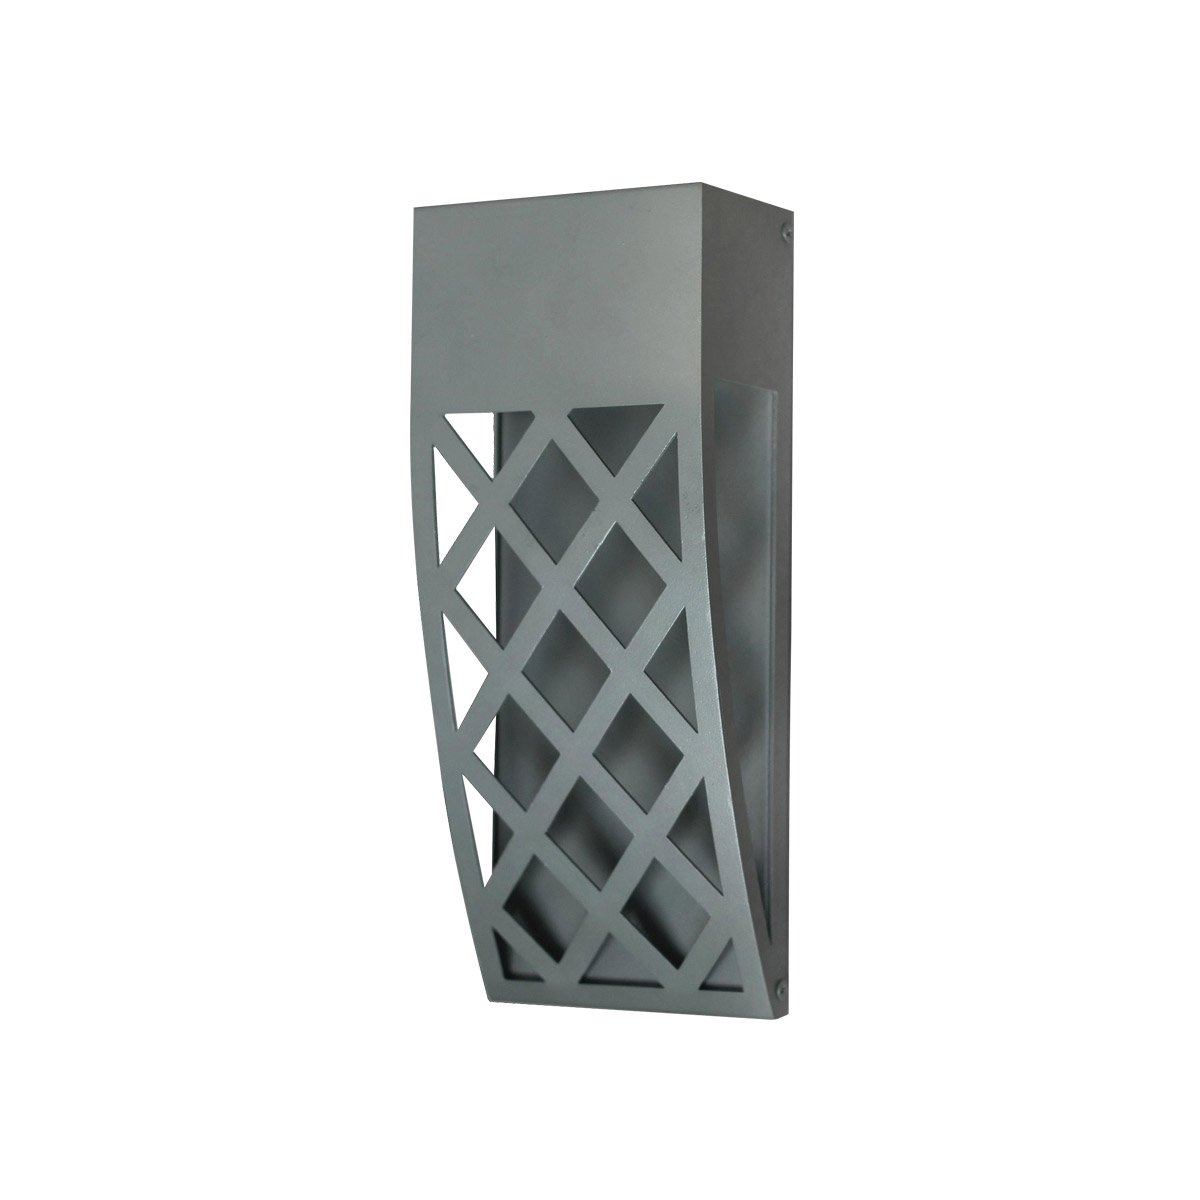 Plc lighting sl monty led inch silver outdoor wall sconce